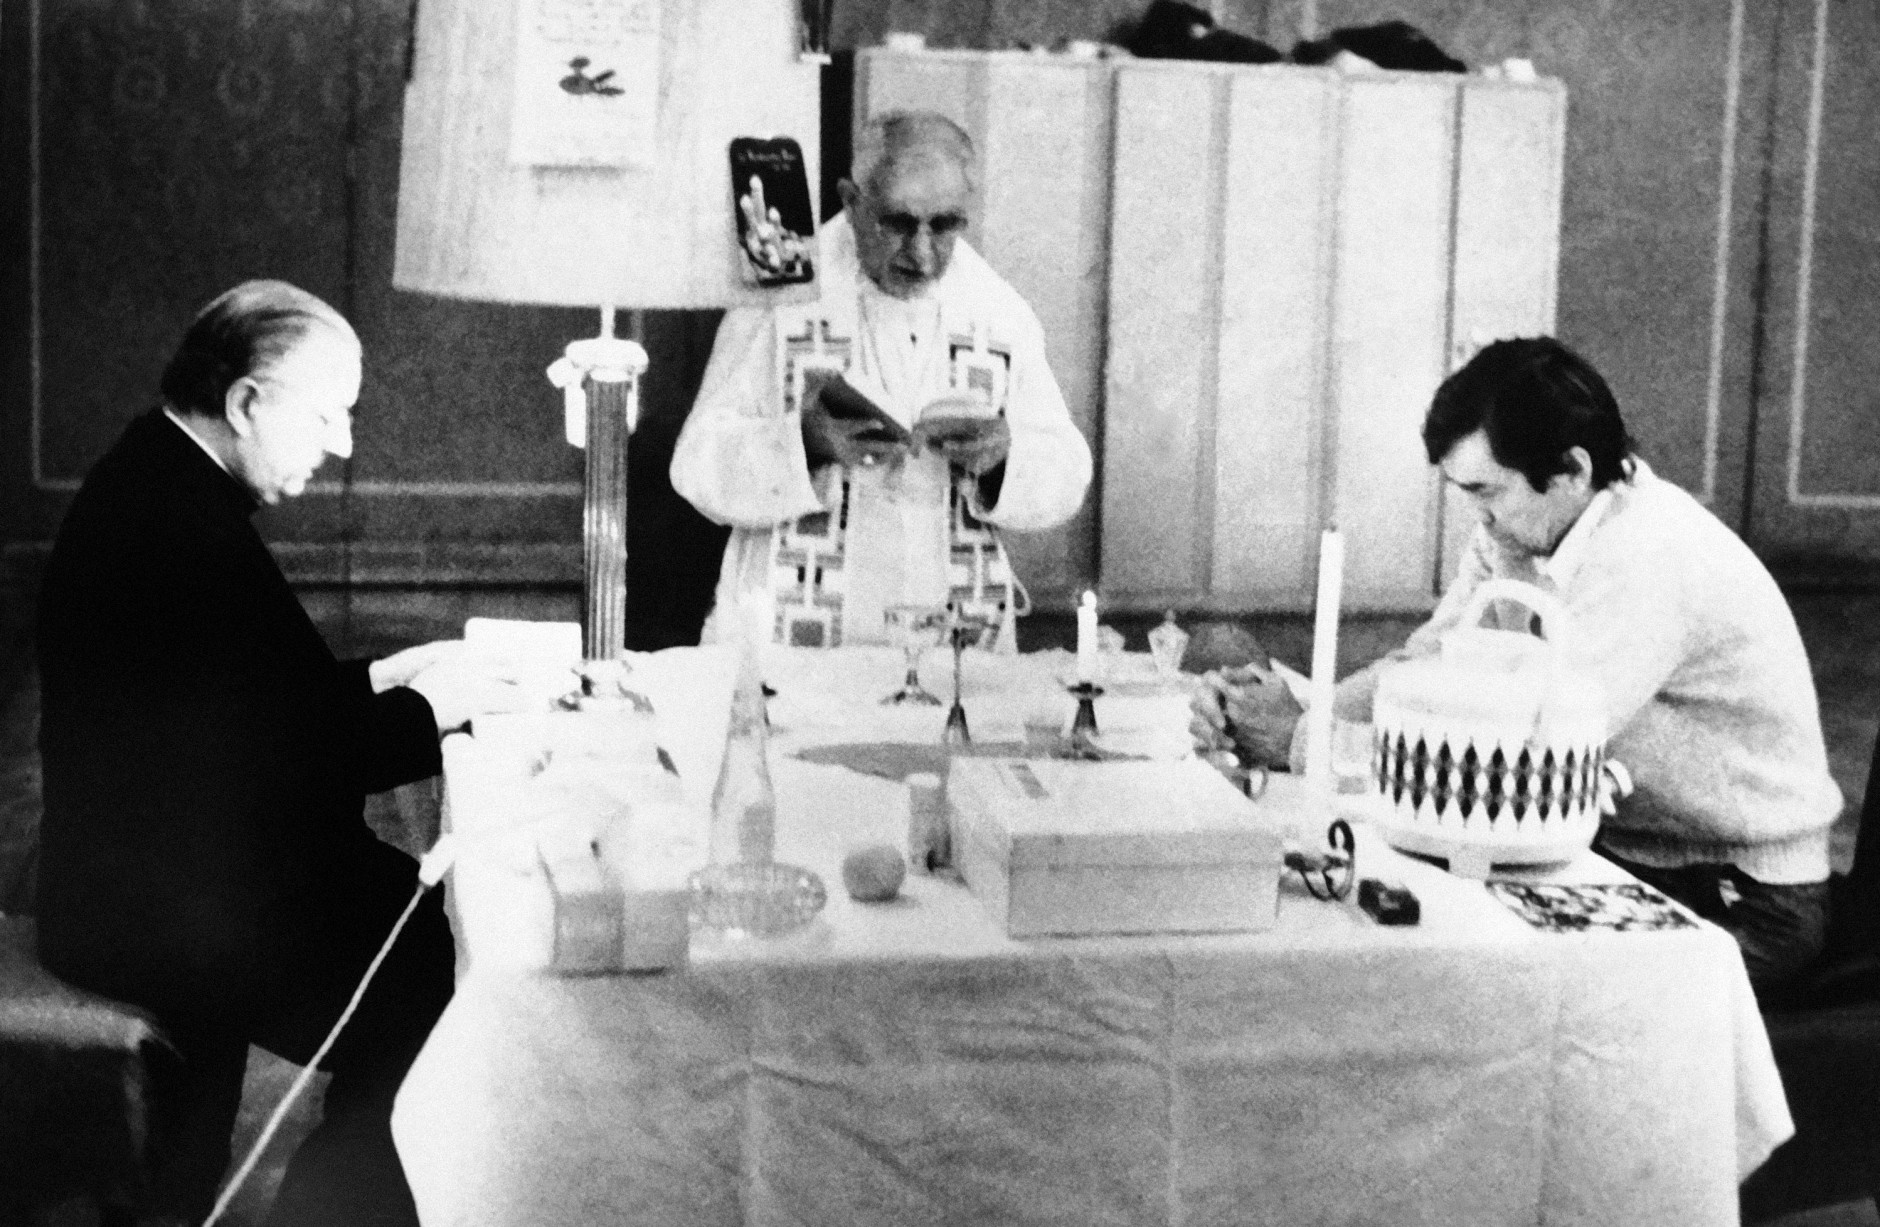 Bruce Laingen, right, U.S. charge d'affairs in Iran, sits with Vatican envoy Anibale Bugnini as Iranian Roman Catholic archbishop of Tehran Youhannan Semaan Issayi, center, celebrates Christmas service at Iran's Foreign Ministry in Tehran on Friday, Dec. 26, 1980. (AP Photo)